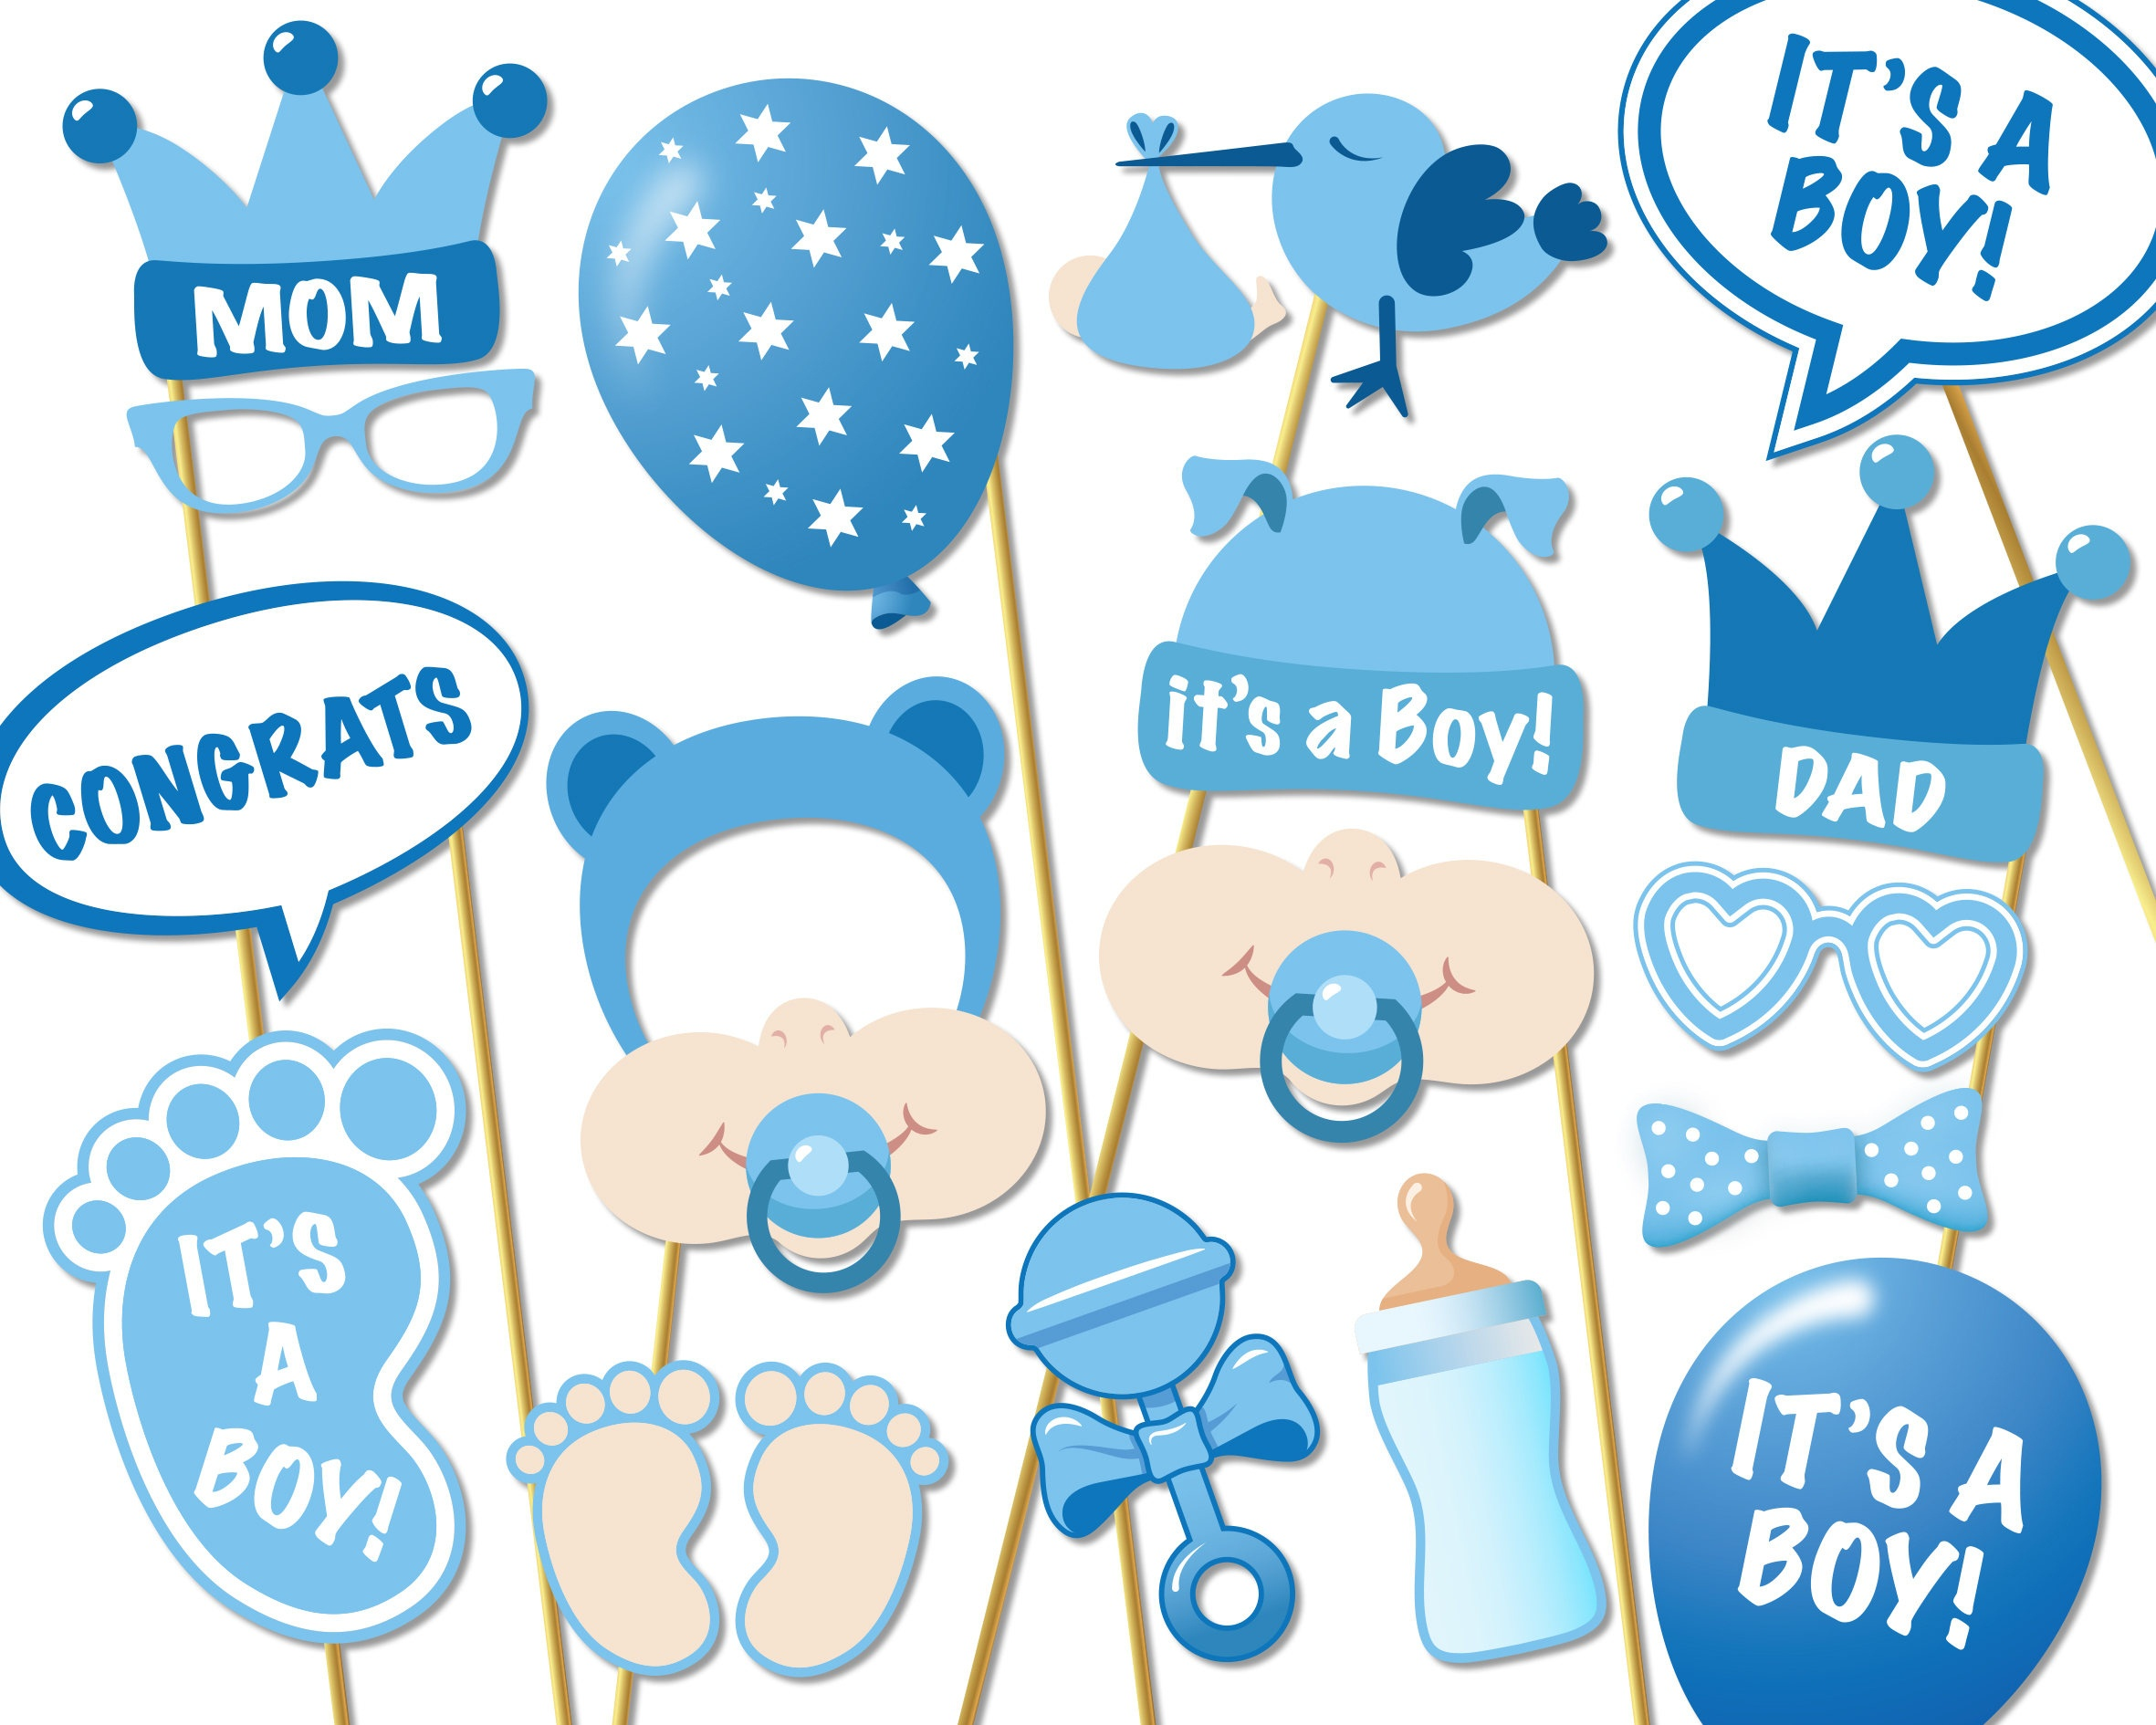 Baby Shower Photo Props It's A Boy Photo Booth Props | Etsy - Free Printable Baby Shower Photo Booth Props